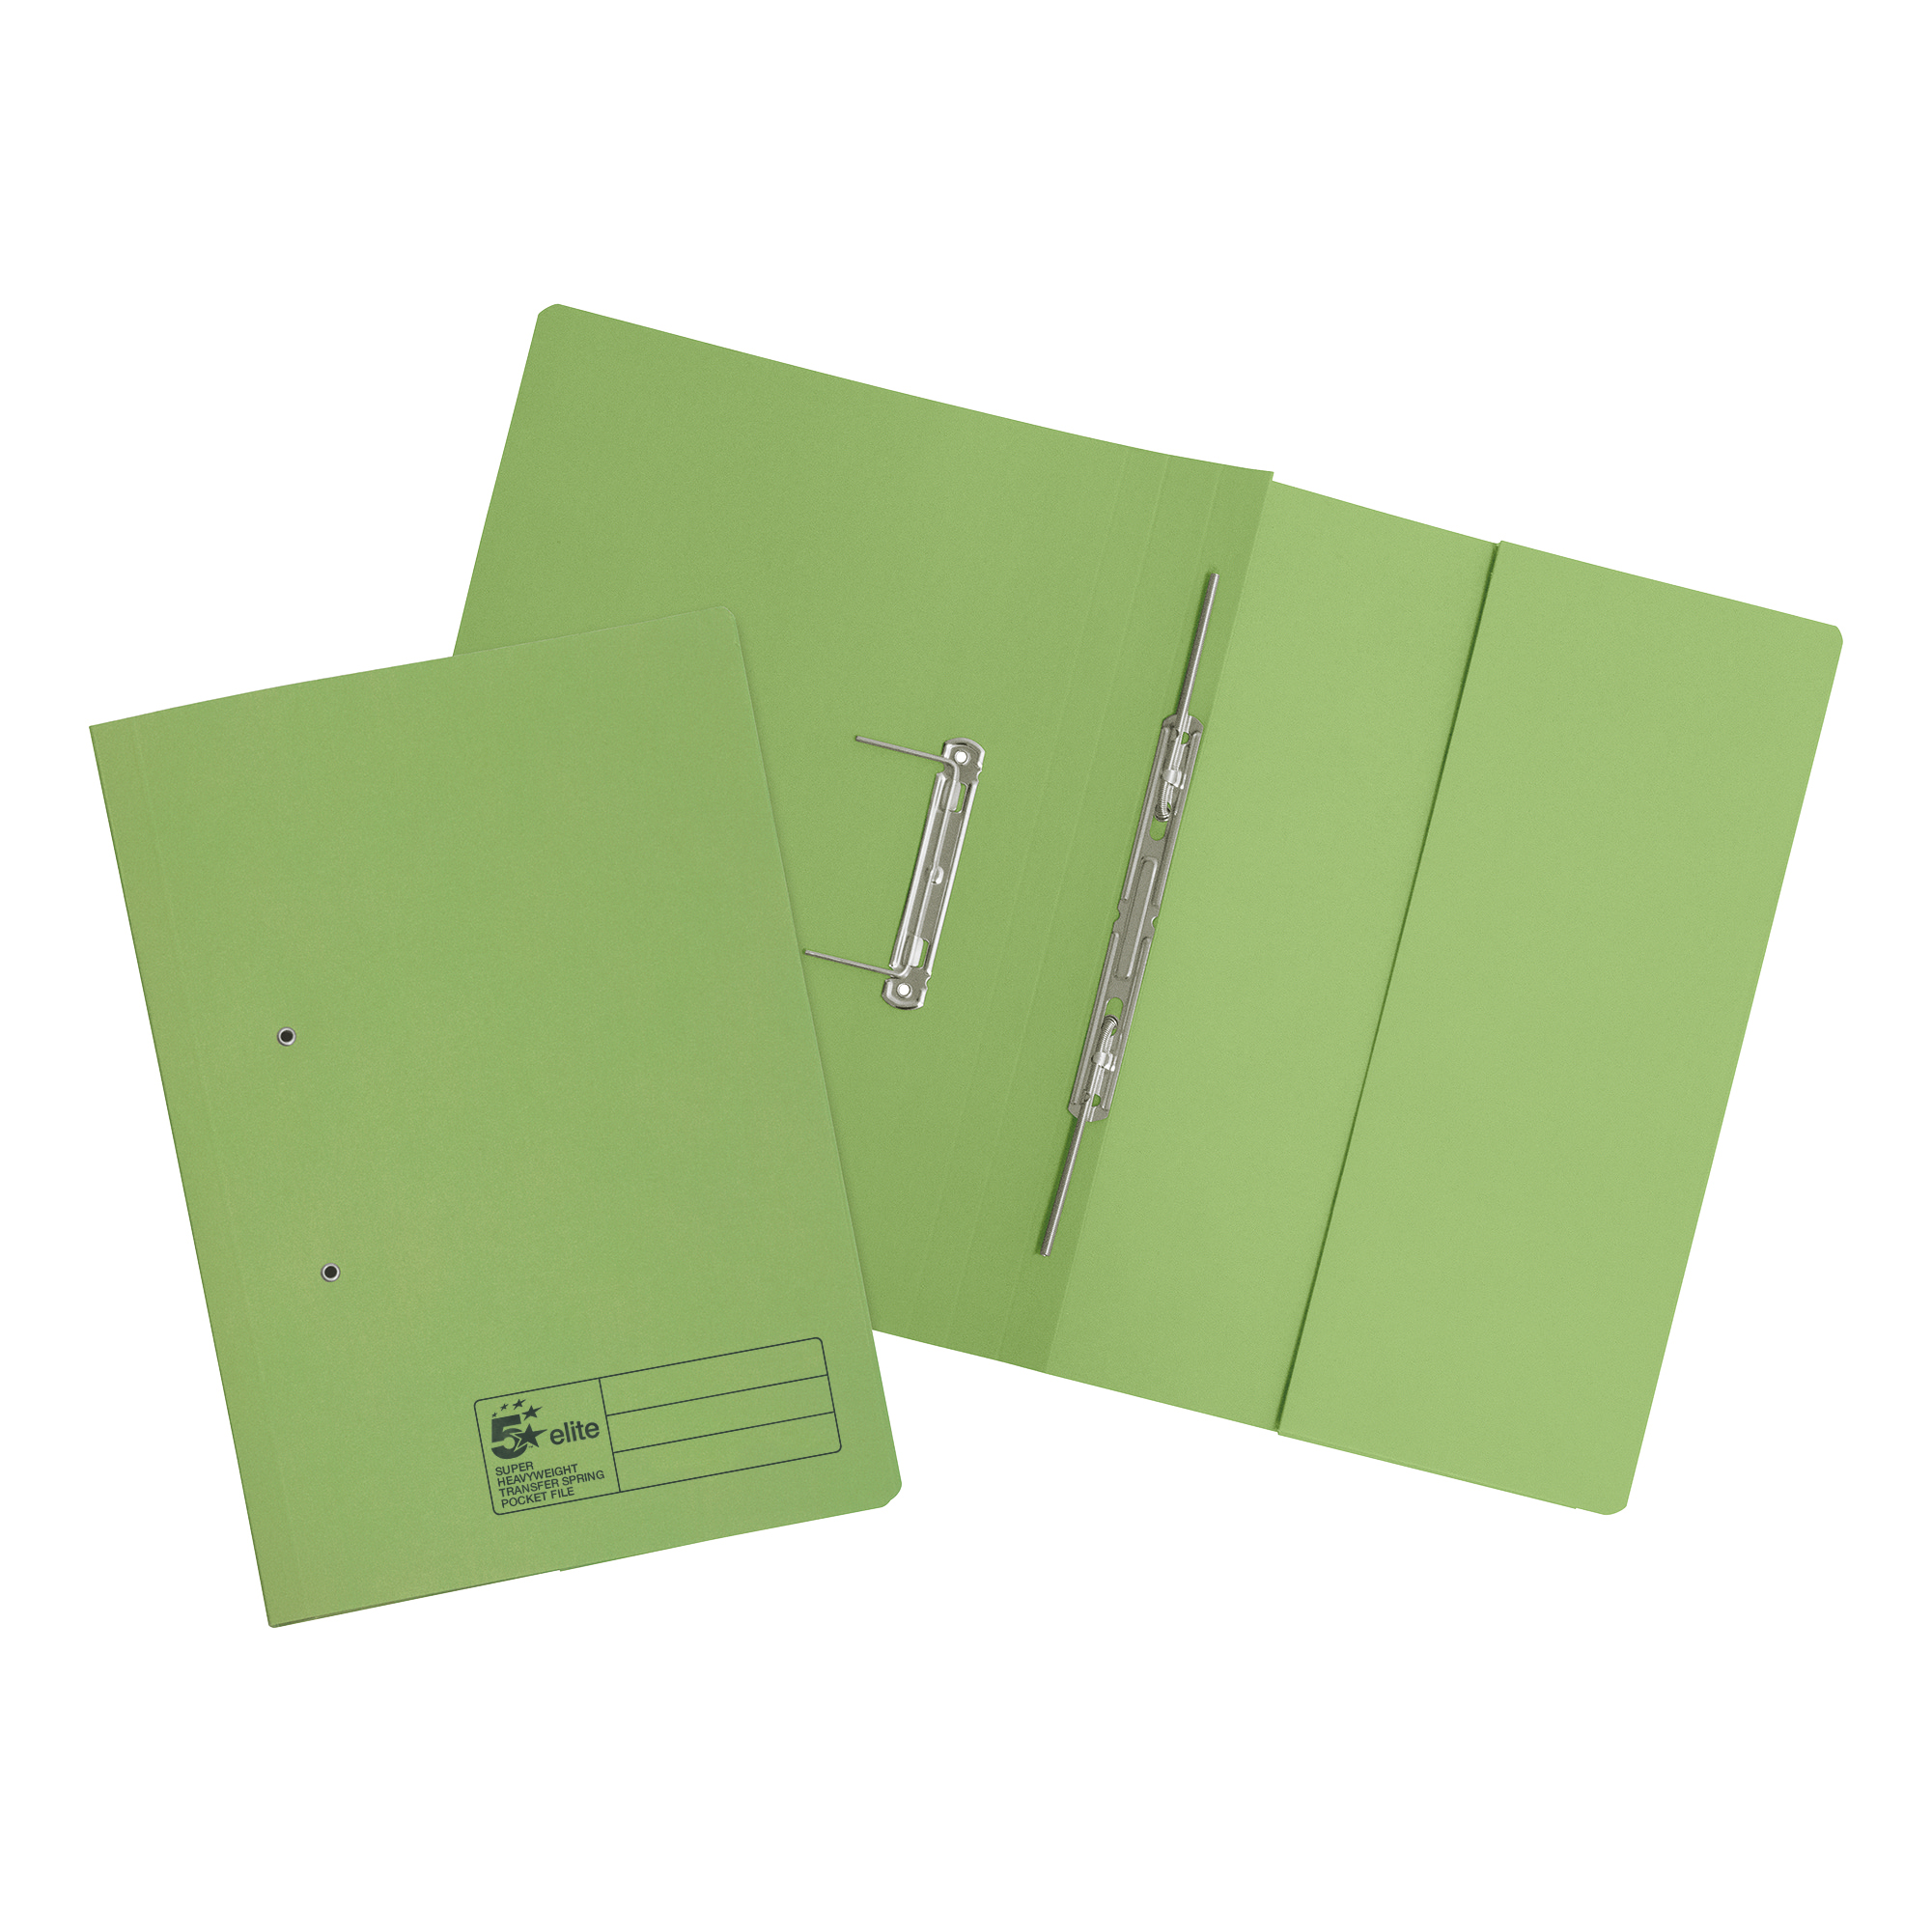 Spring Files 5 Star Elite Transfer Spring Pocket File Super Heavyweight 420gsm Foolscap Green Pack 25